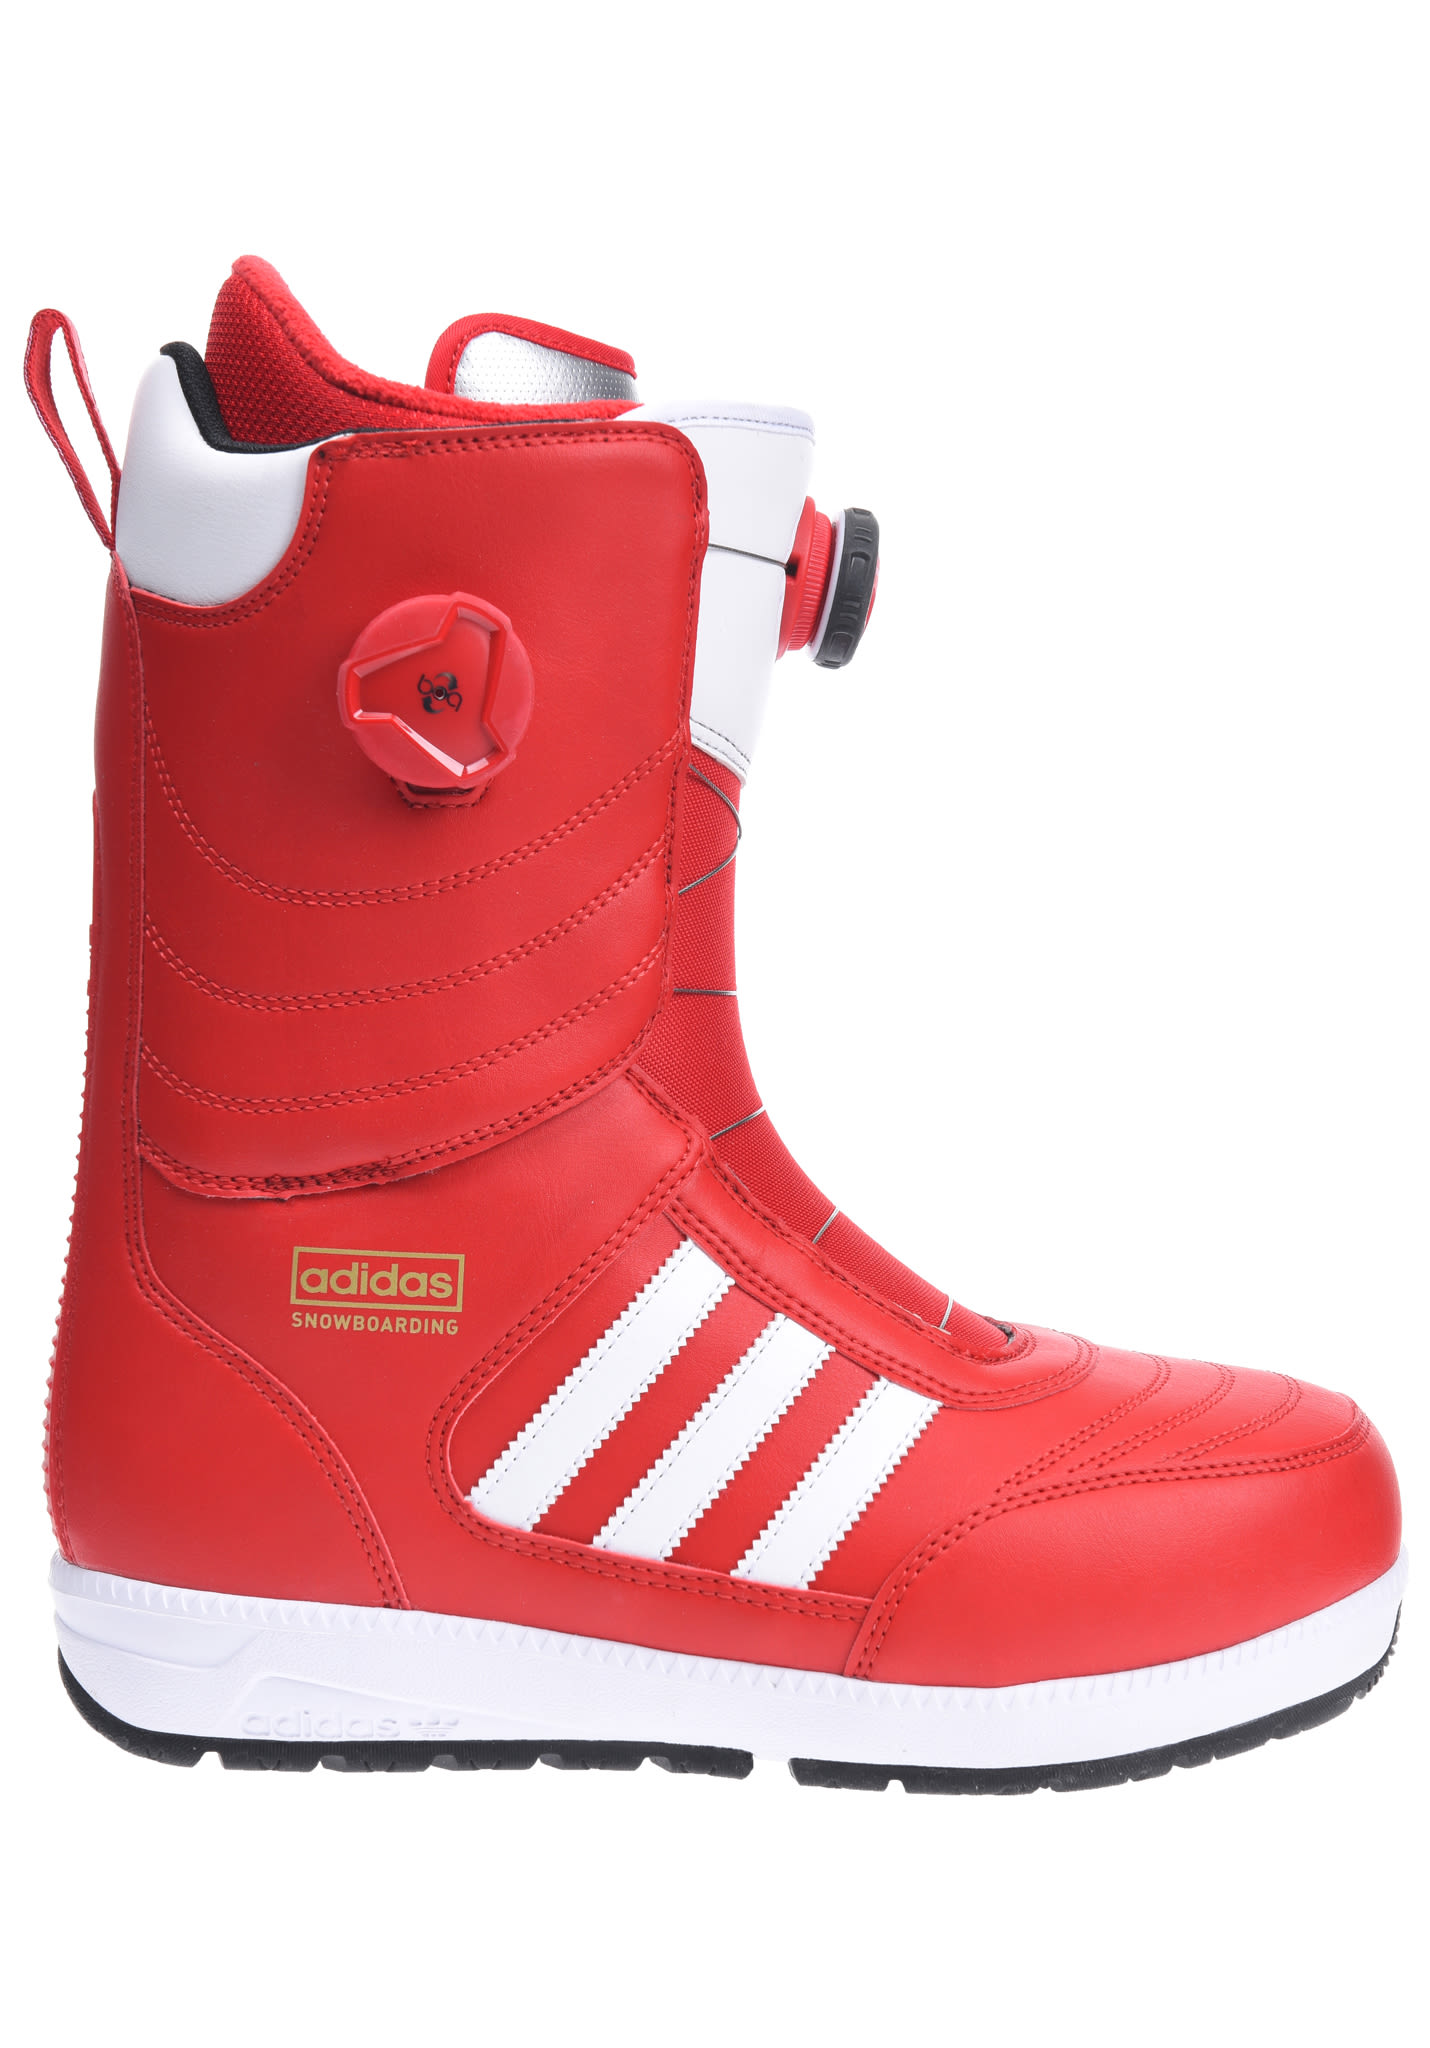 san francisco 679ed 52cfe Adidas Snowboarding Response ADV - Snowboard Boots for Men - Red - Planet  Sports